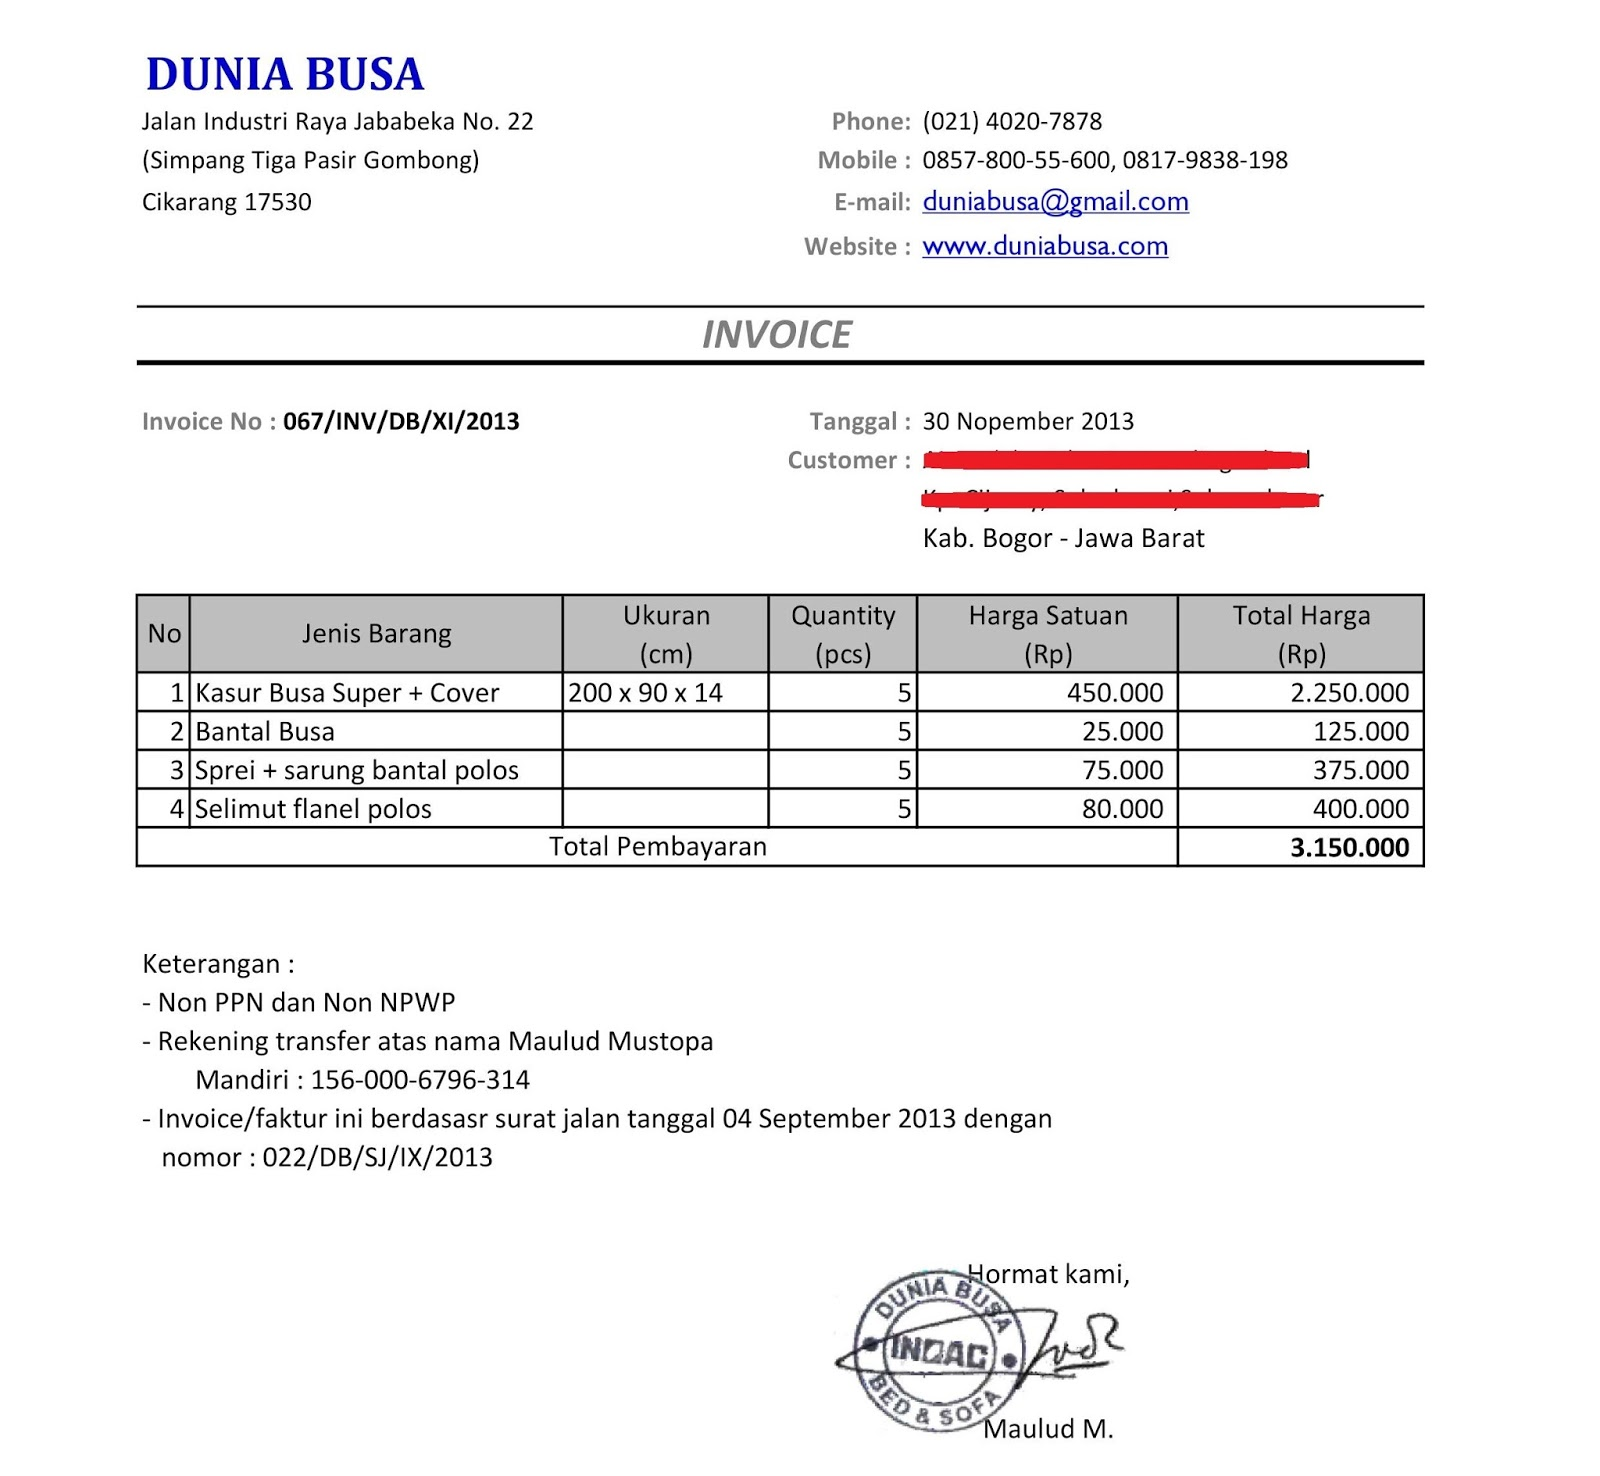 Centralasianshepherdus  Inspiring Free Invoice Online  Create Invoice Online  Invoice Template  With Exciting Contoh Format Invoice Atau Surat Tagihan  Brankas Arsip  Free Invoice Online With Nice Business Receipt Organizer Also Confirm The Receipt Of This Email In Addition Mrv Fee Receipt And Constructive Receipt Of Income As Well As Church Donation Receipt Additionally Donation Receipt Letter For Tax Purposes From Sklepco With Centralasianshepherdus  Exciting Free Invoice Online  Create Invoice Online  Invoice Template  With Nice Contoh Format Invoice Atau Surat Tagihan  Brankas Arsip  Free Invoice Online And Inspiring Business Receipt Organizer Also Confirm The Receipt Of This Email In Addition Mrv Fee Receipt From Sklepco